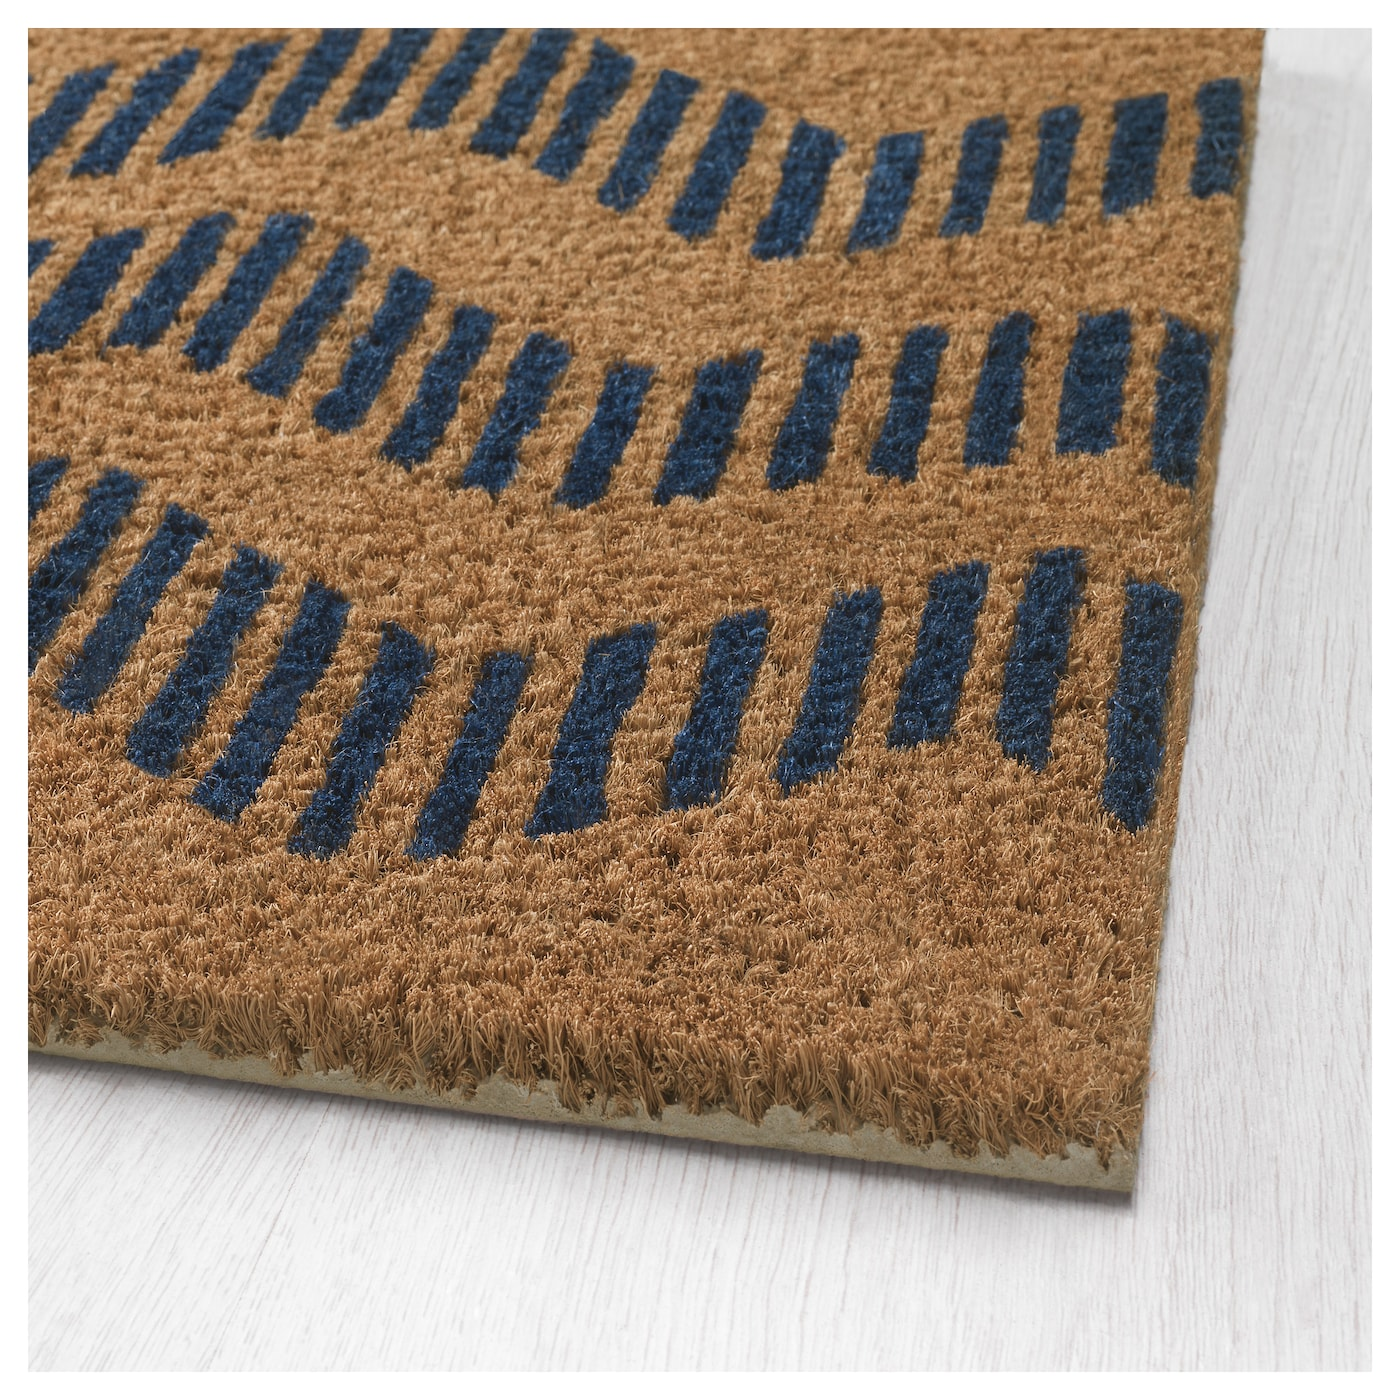 IKEA SOMMAR 2016 door mat Easy to keep clean - just vacuum or shake the rug.